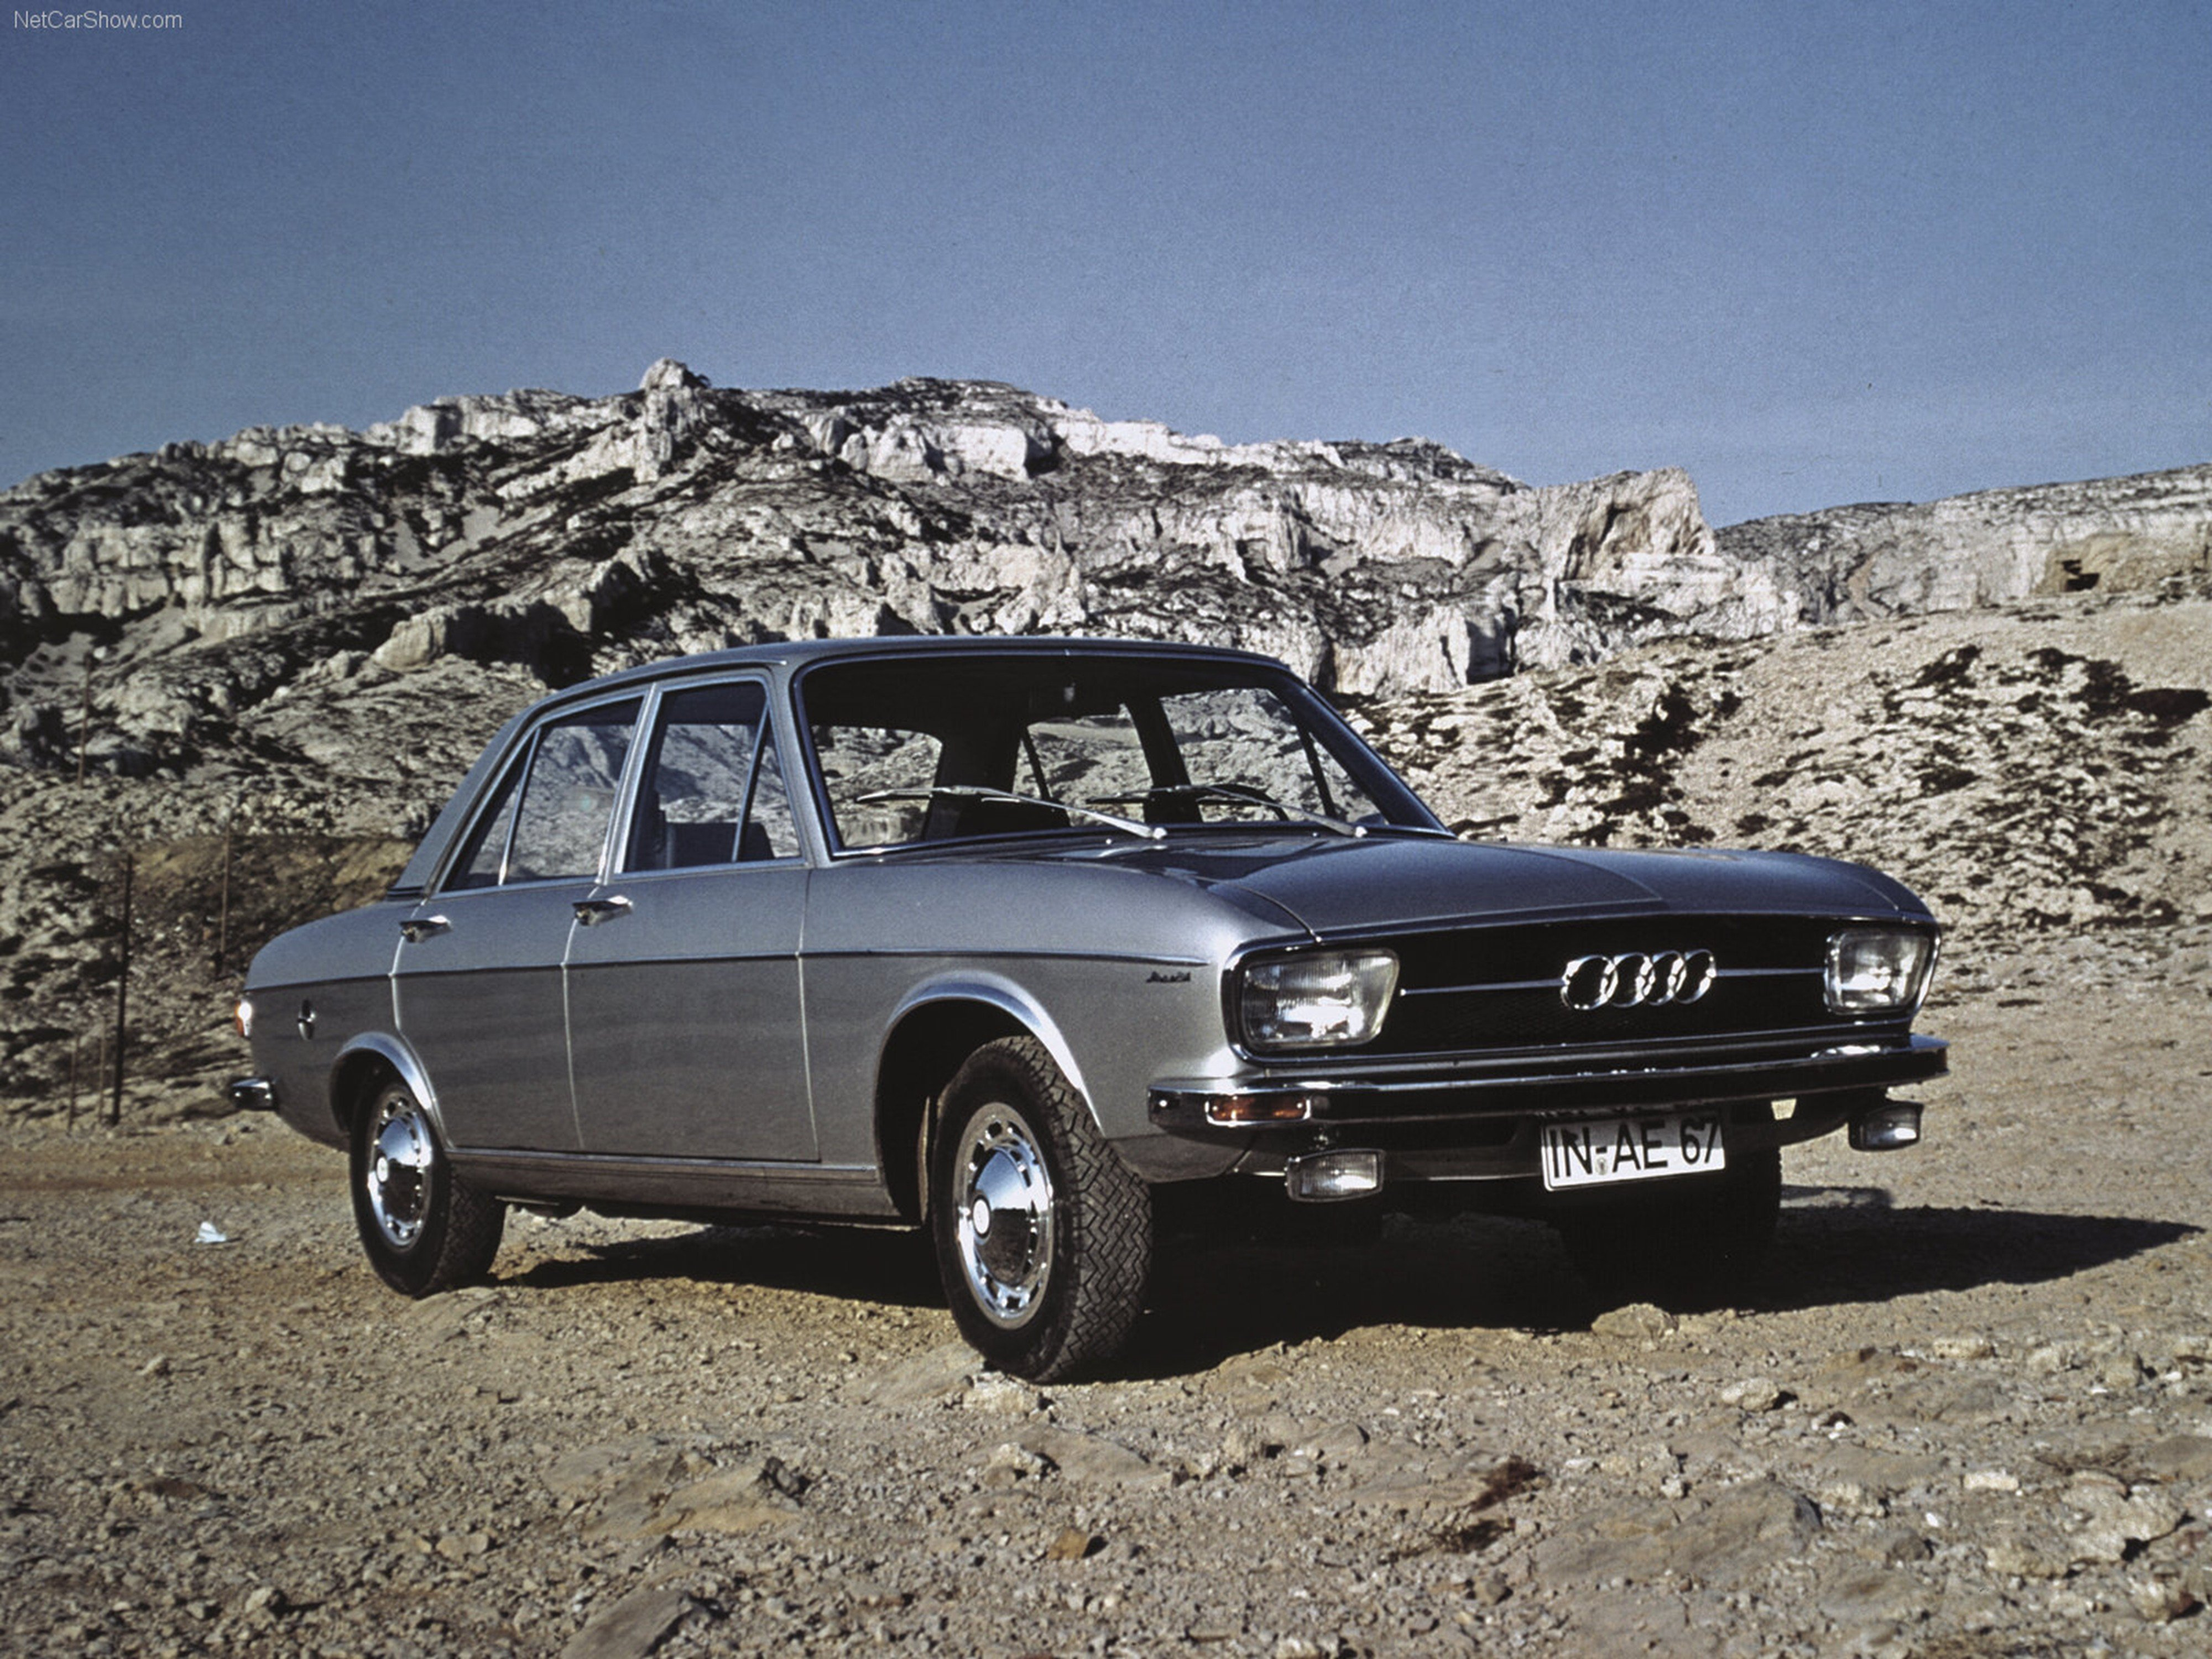 Audi 100 1969 retro Germany car wallpaper 4000x3000 wallpaper ...